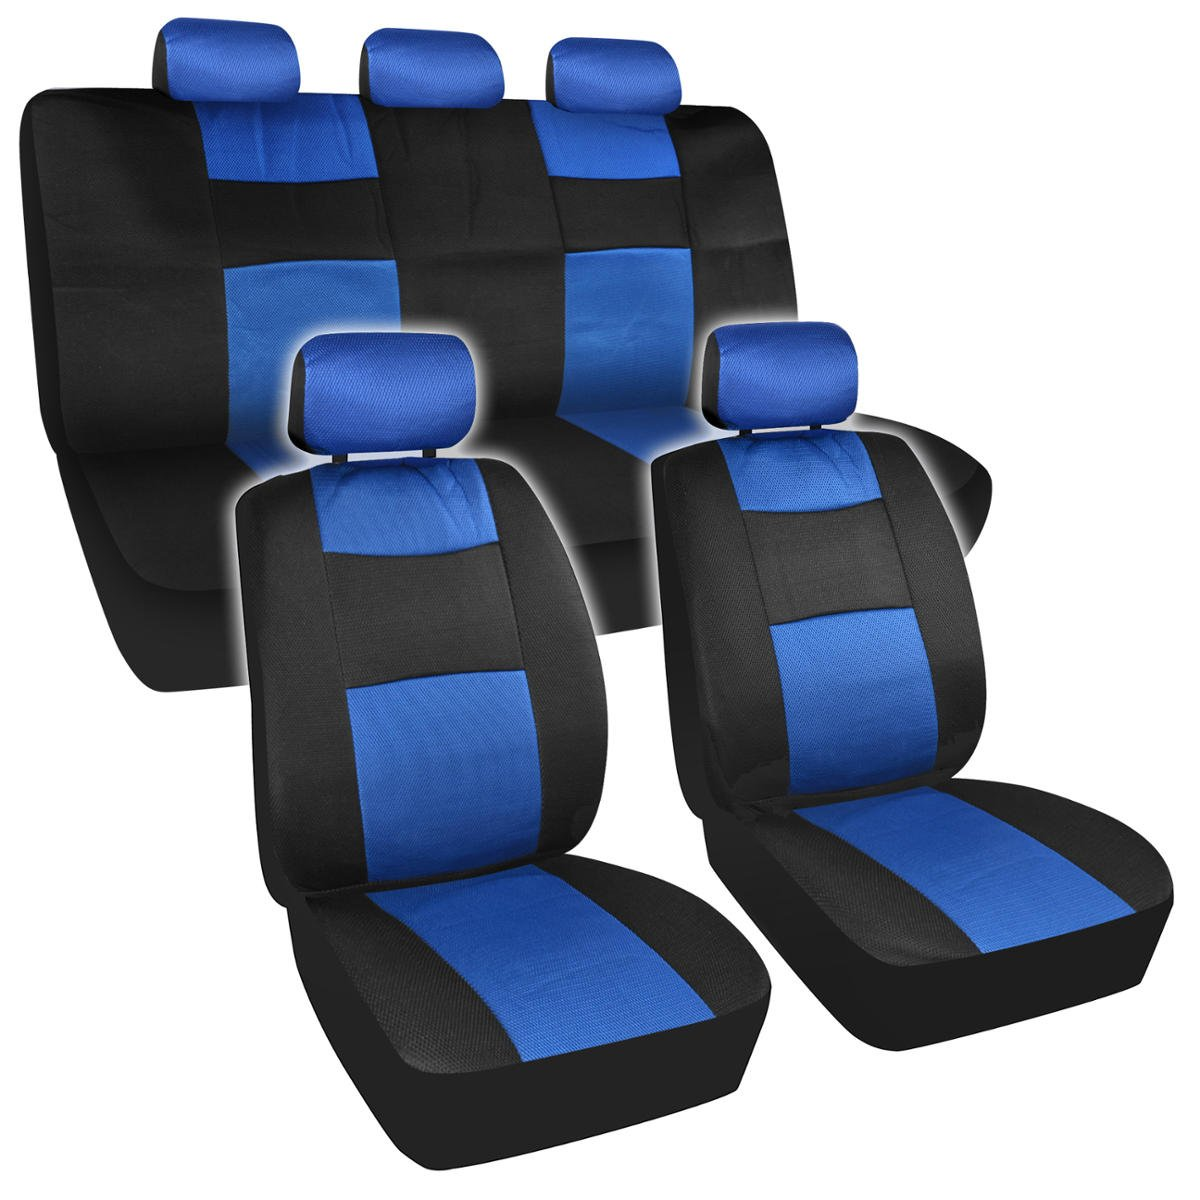 Amazon BDK USA Non Fading 2 Tone Car Seat Cover 11 Pc Set Universal Mesh Low Back Blue Black Automotive